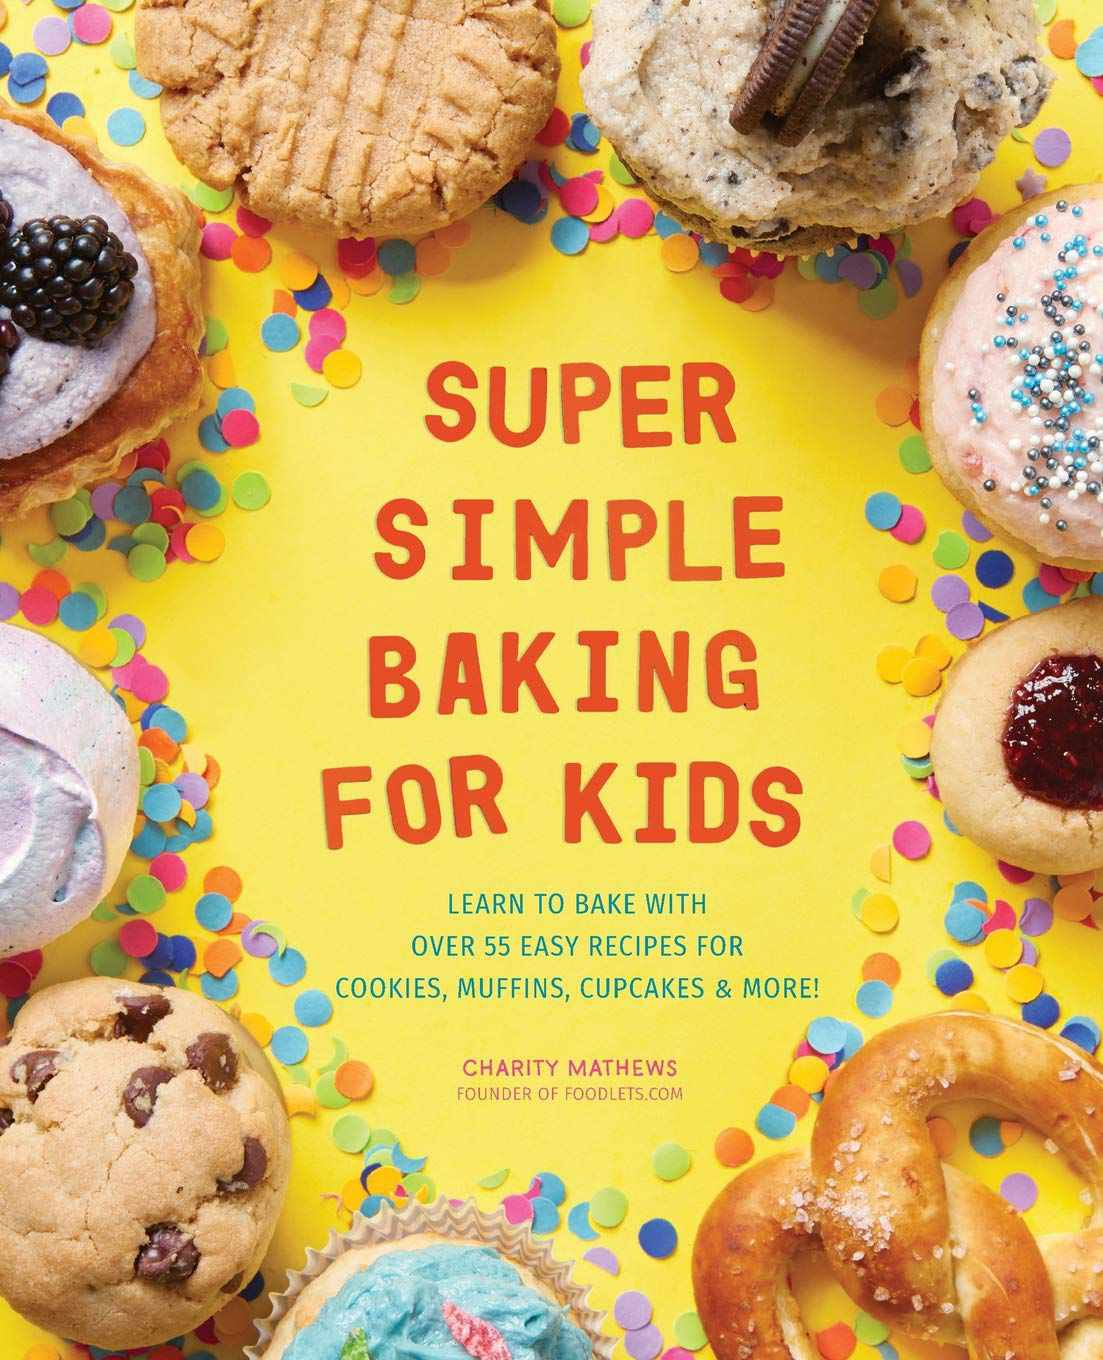 Super Simple Baking for Kids by Charity Mathews